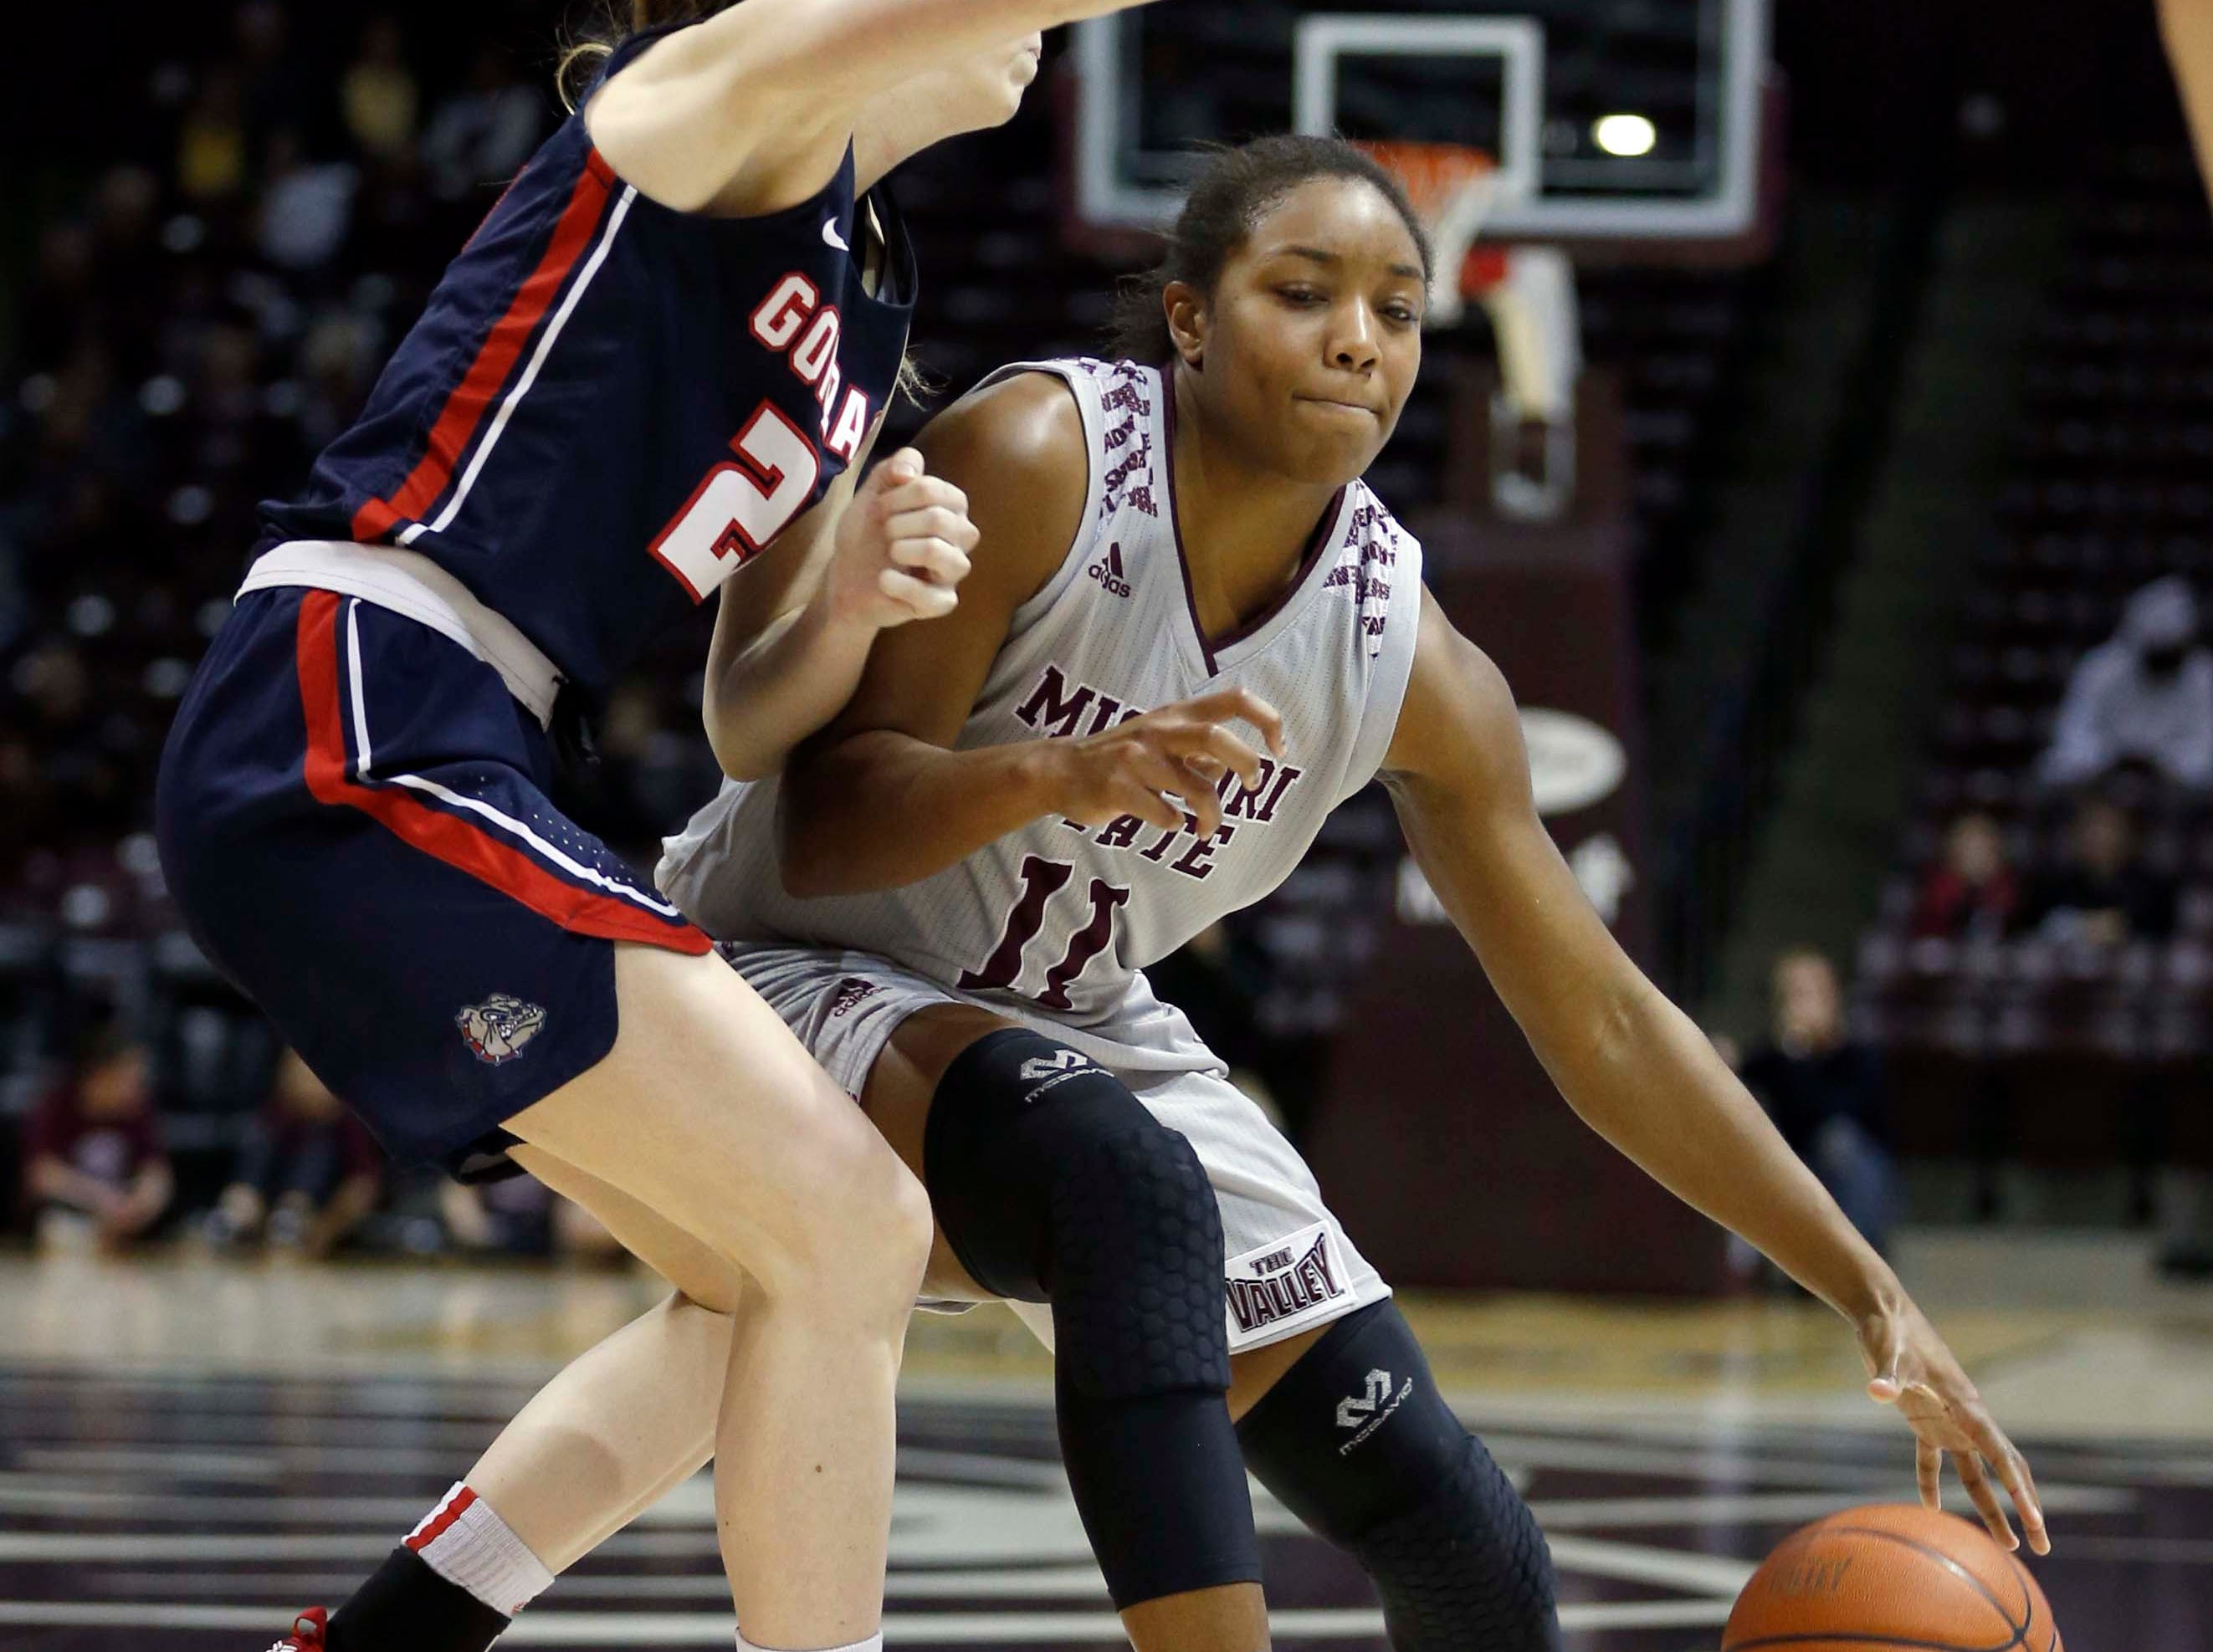 The MSU Lady Bears' Brice Calip seen here against Gonzaga at JQH Arena in Springfield on December 16, 2018.